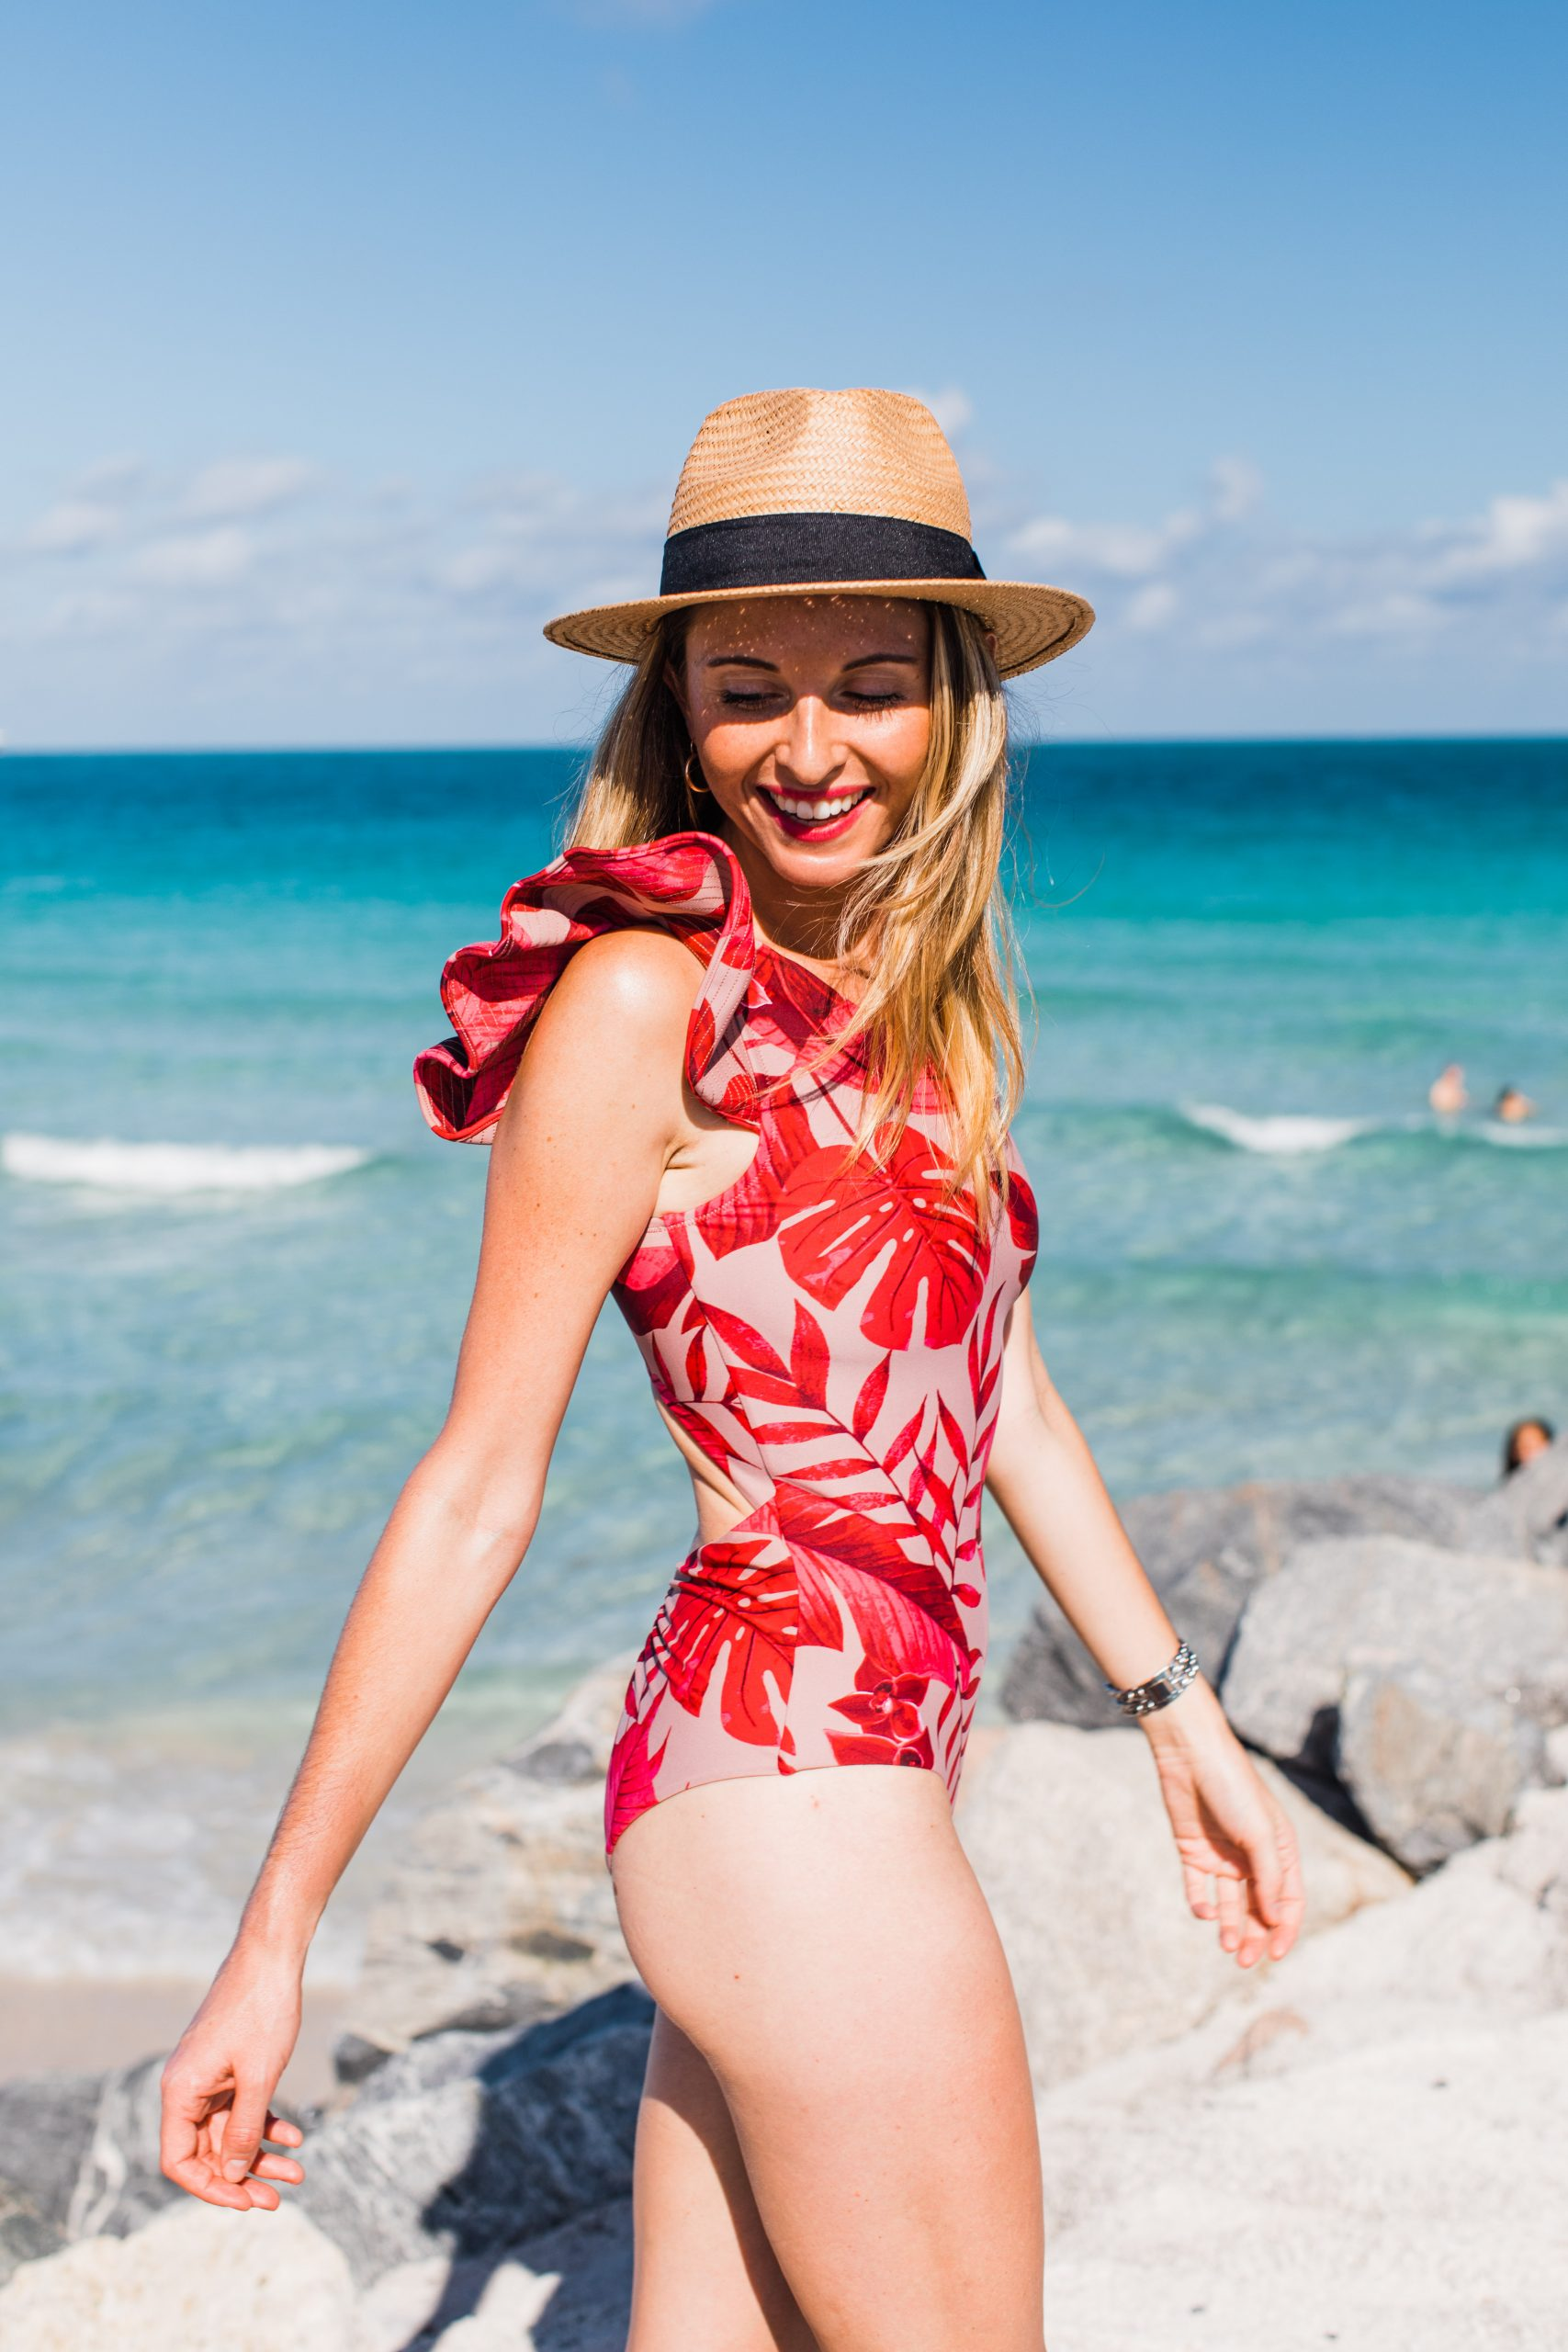 Tine Maria wearing ruffle one piece swimsuit bodysuit from Johanna Ortiz x H&M collaboration and H&M straw fedora hat on Miami Beach